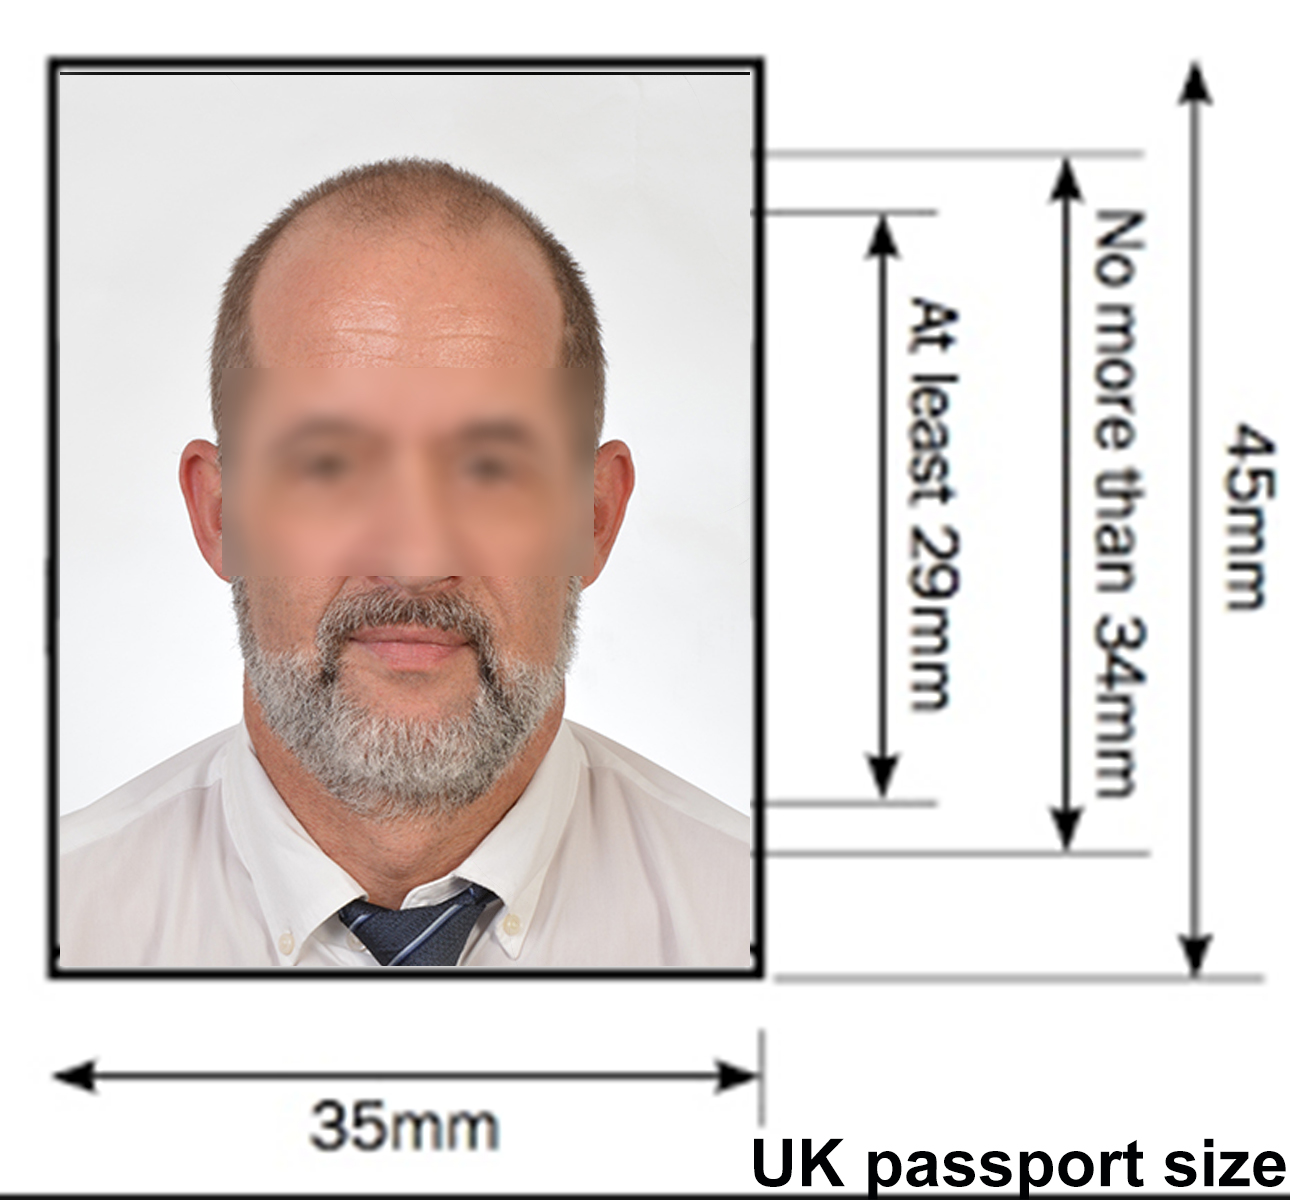 Irish passport size photo dimensions